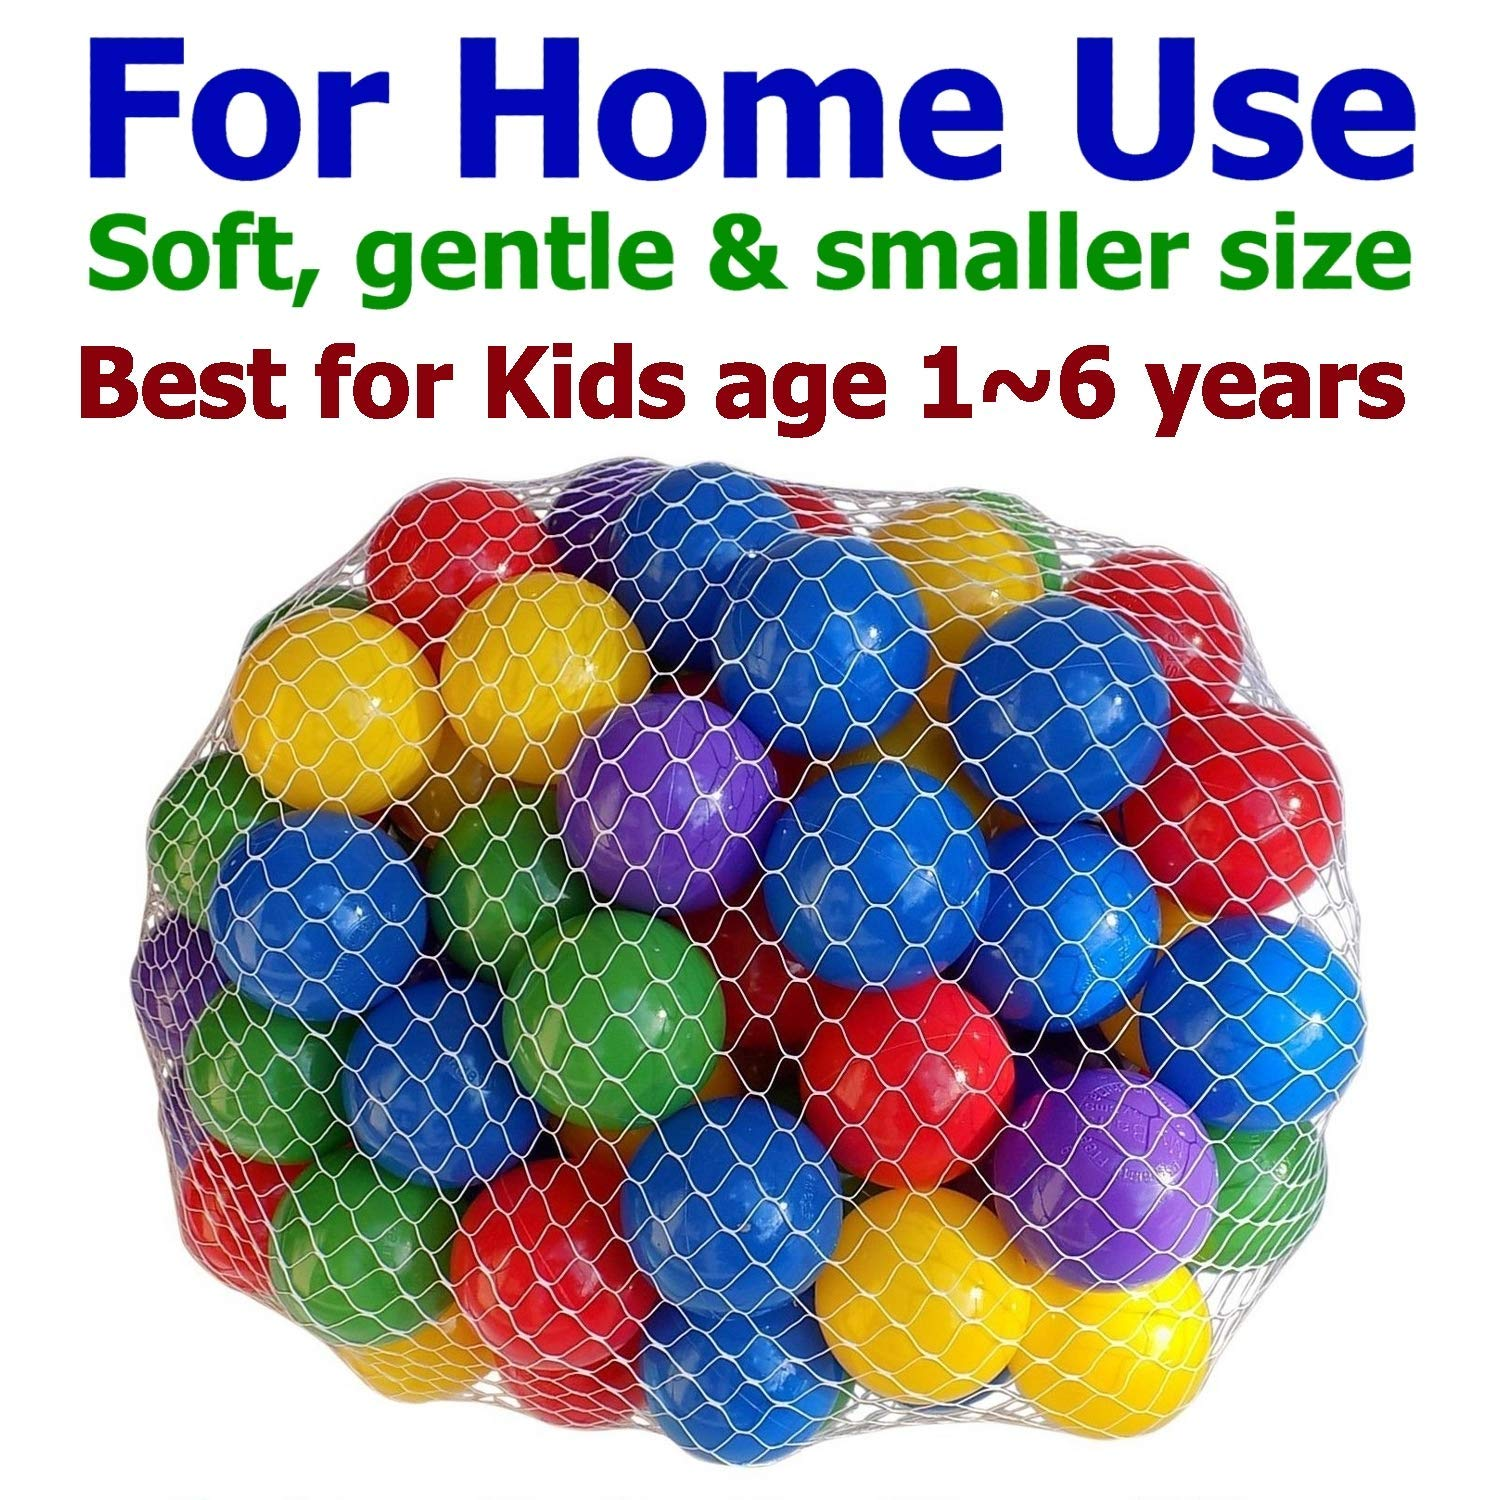 Sample Pack of 50 Large Size 2.5'' Crush-Proof Ball Pit Balls - 5 Colors, Phthalate Free; BPA Free, Non-Toxic, Non-Recycled Plastic (Sample Pack of 50) by My Balls